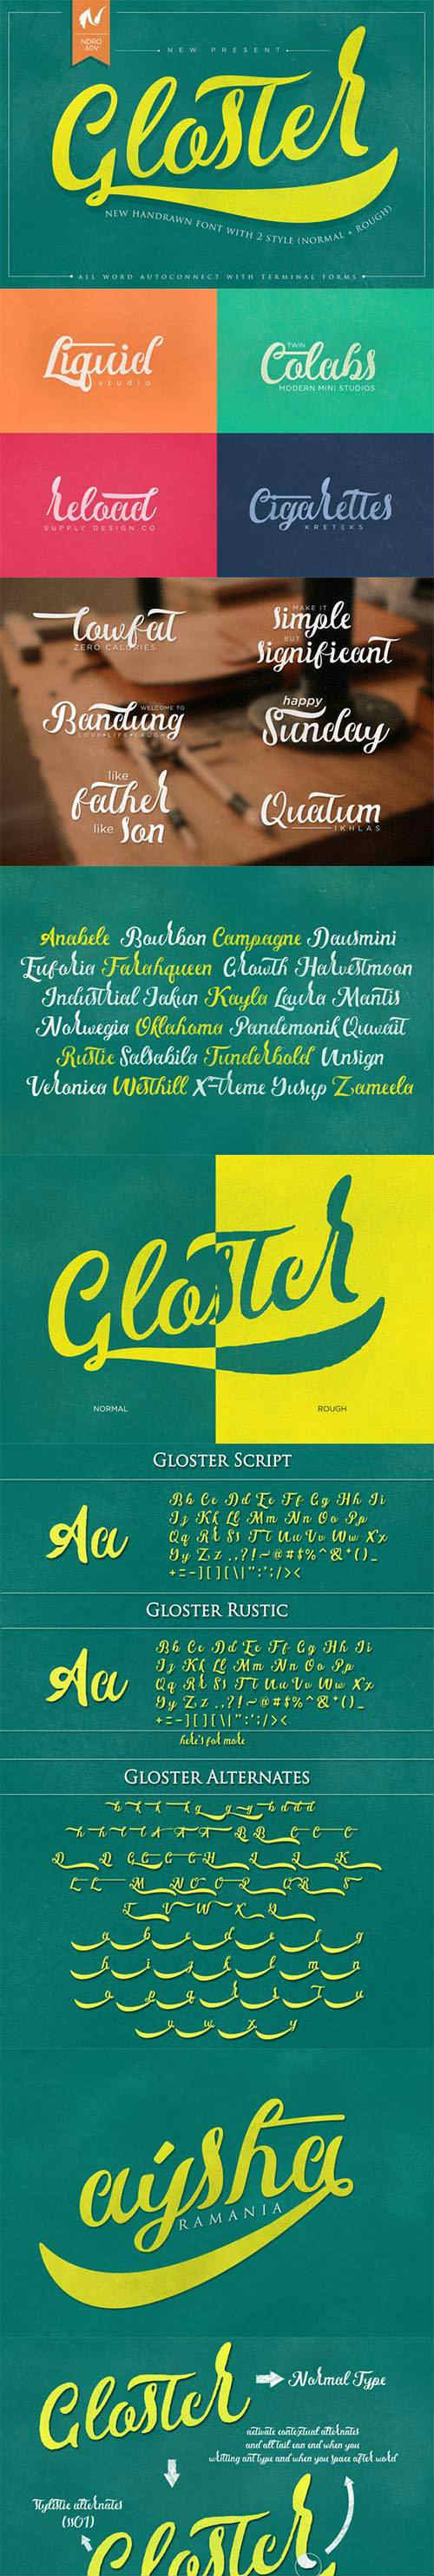 Font - Gloster Typeface